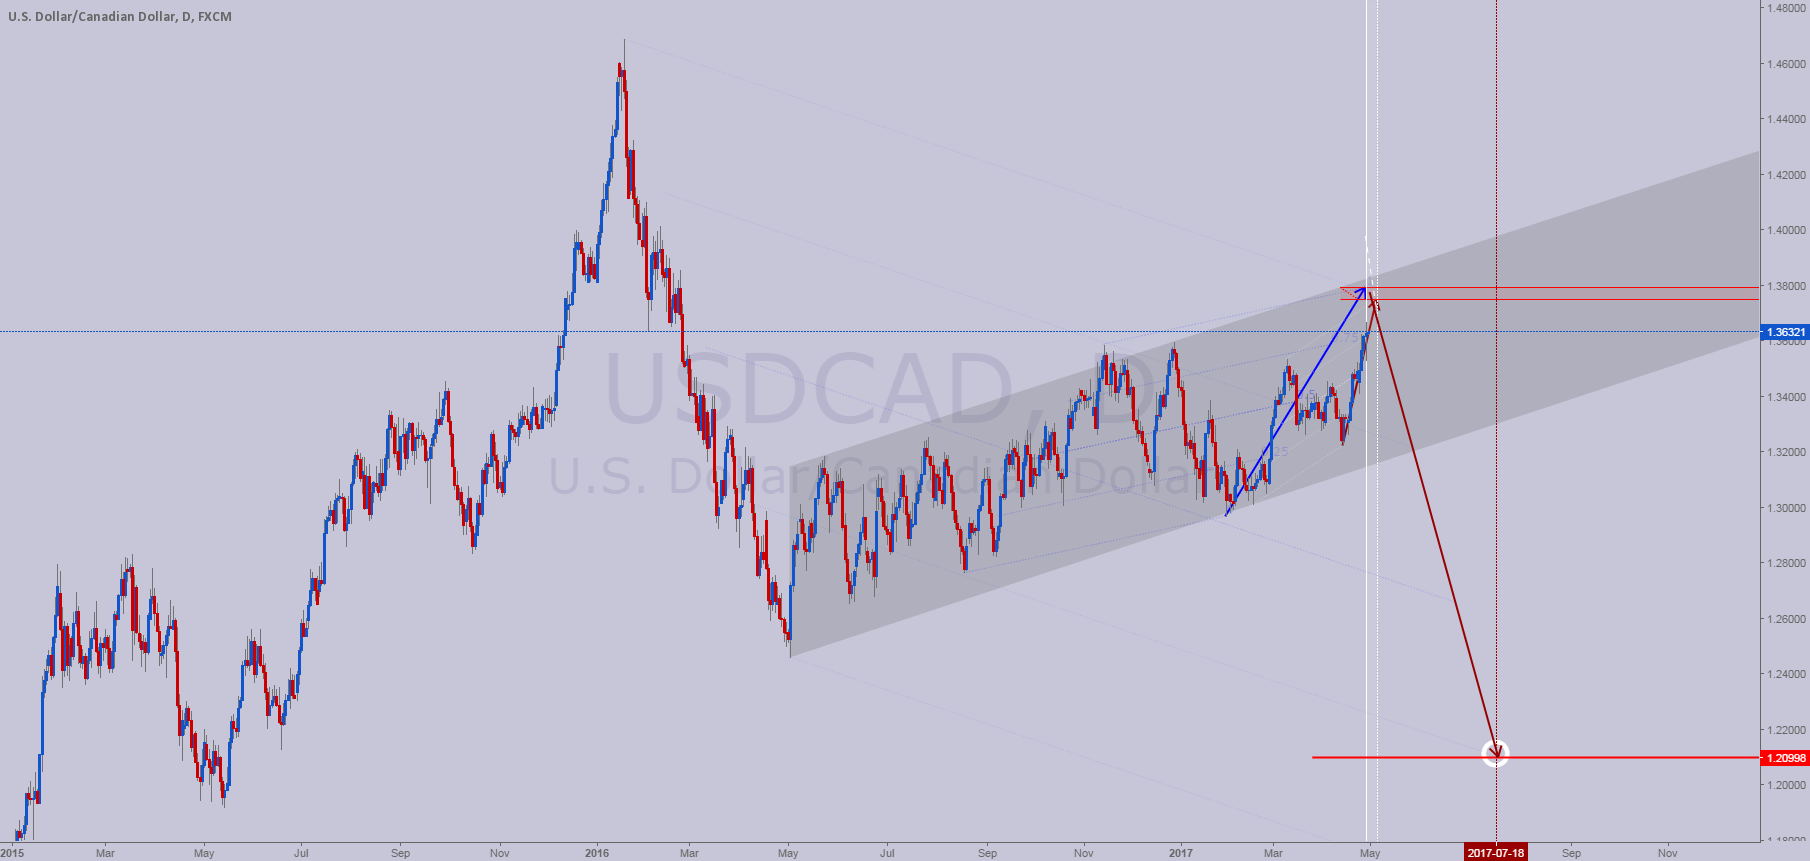 UCAD - Short ~ 1.375-9 by May 5th to 1.21 by end of July 2017